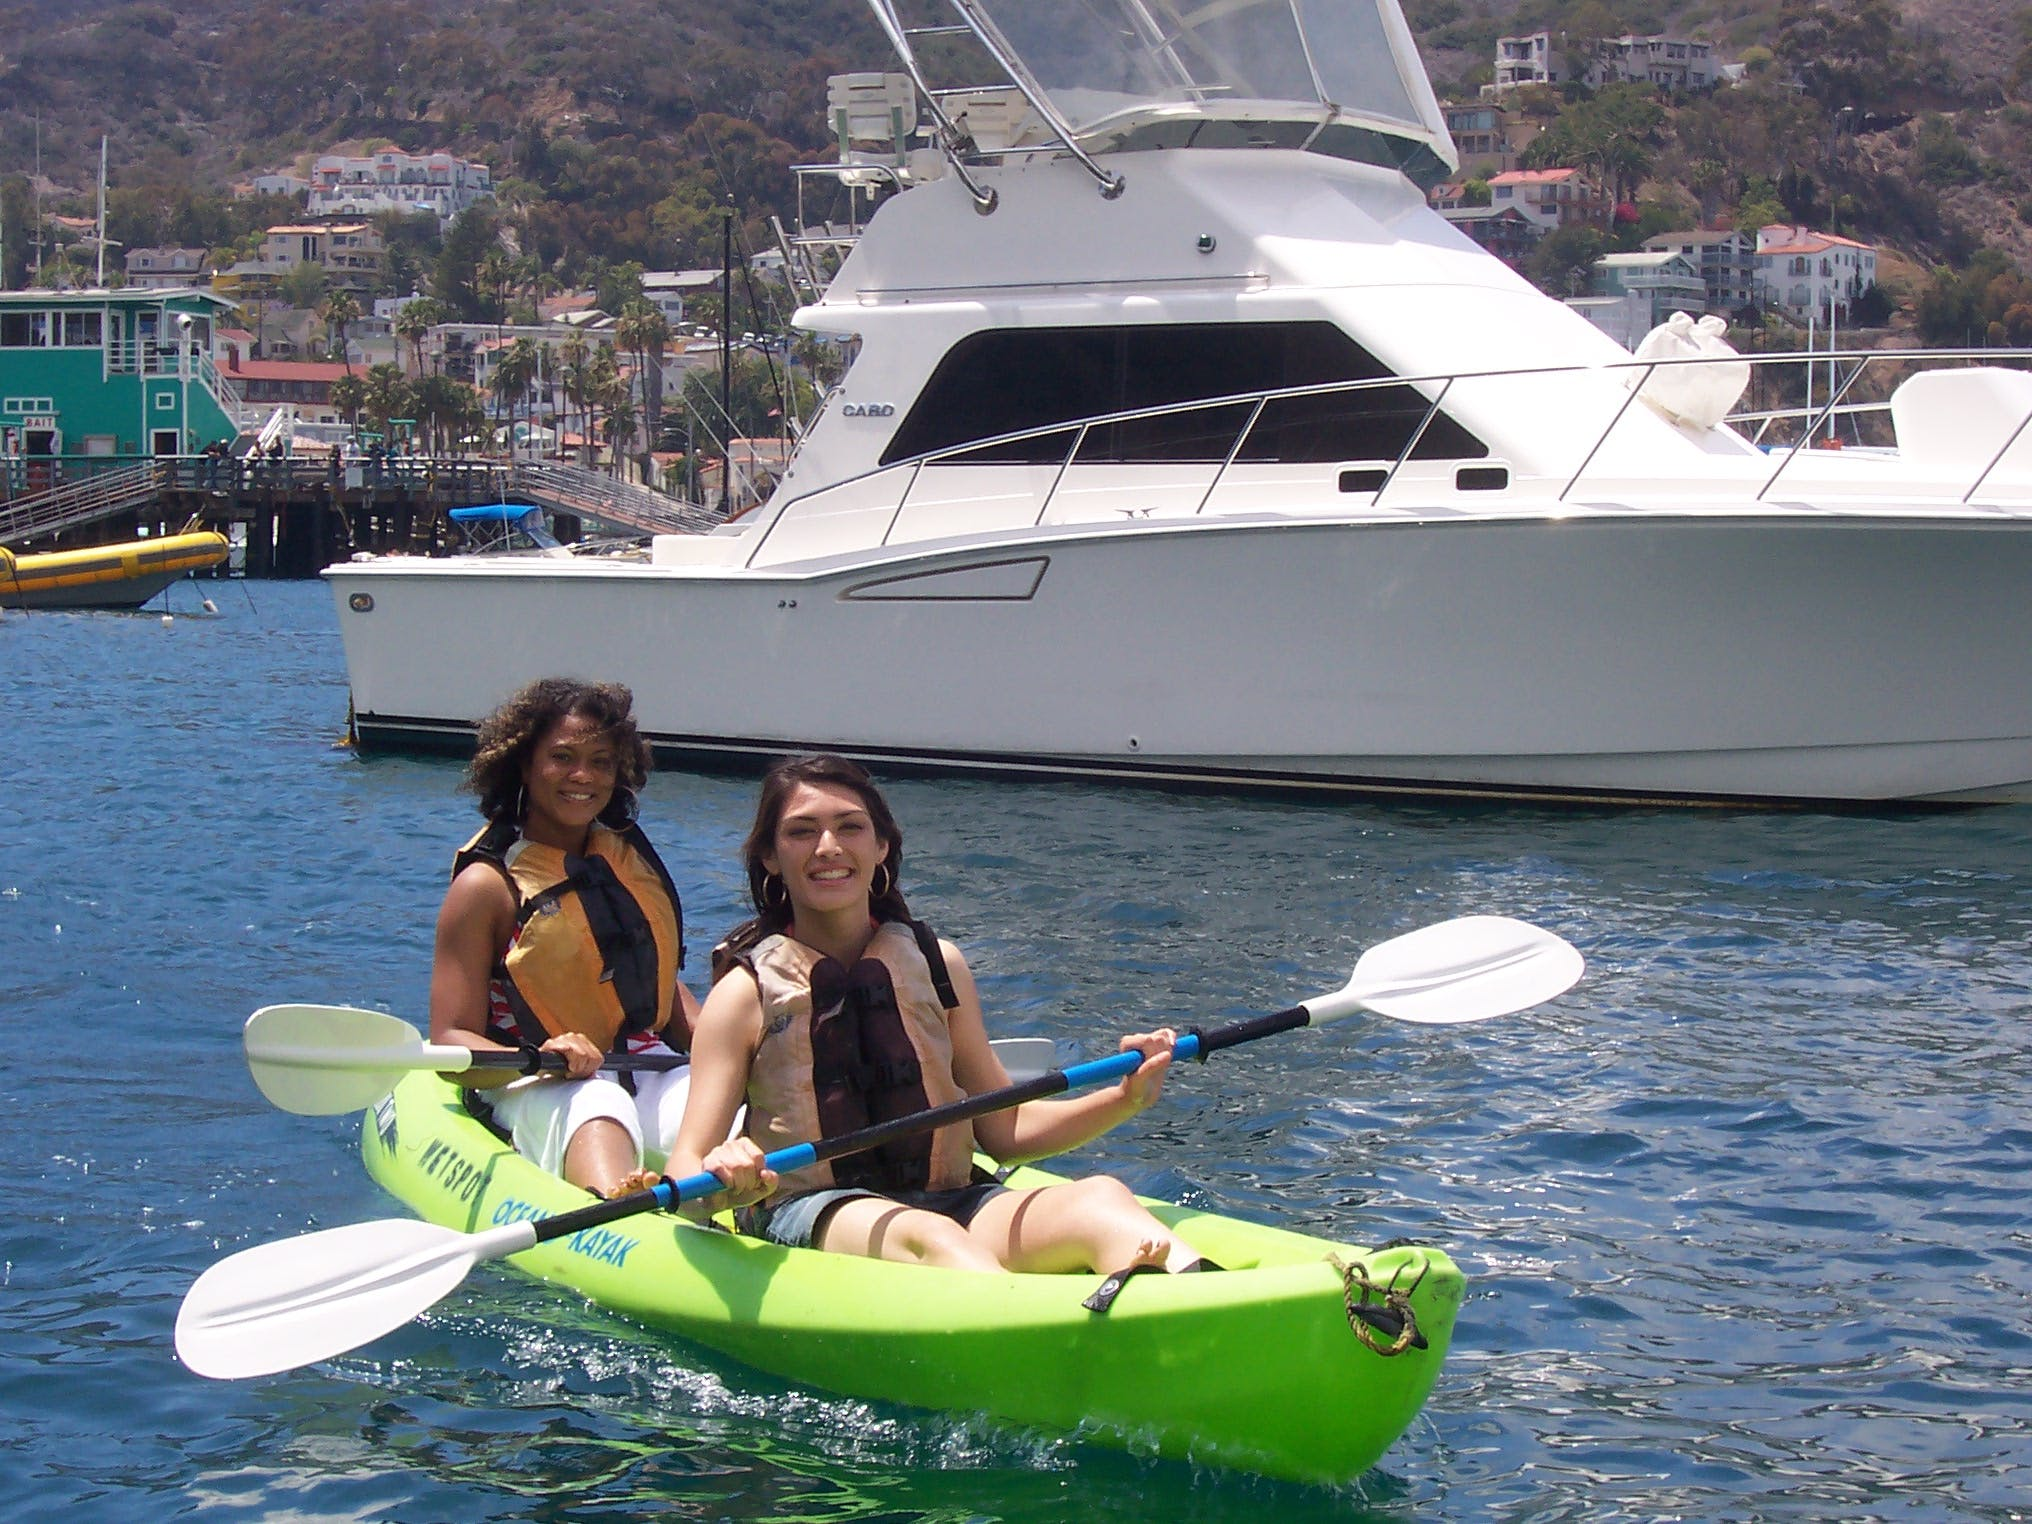 2 Women sharing a tandem green kayak in the water with a boat in the background